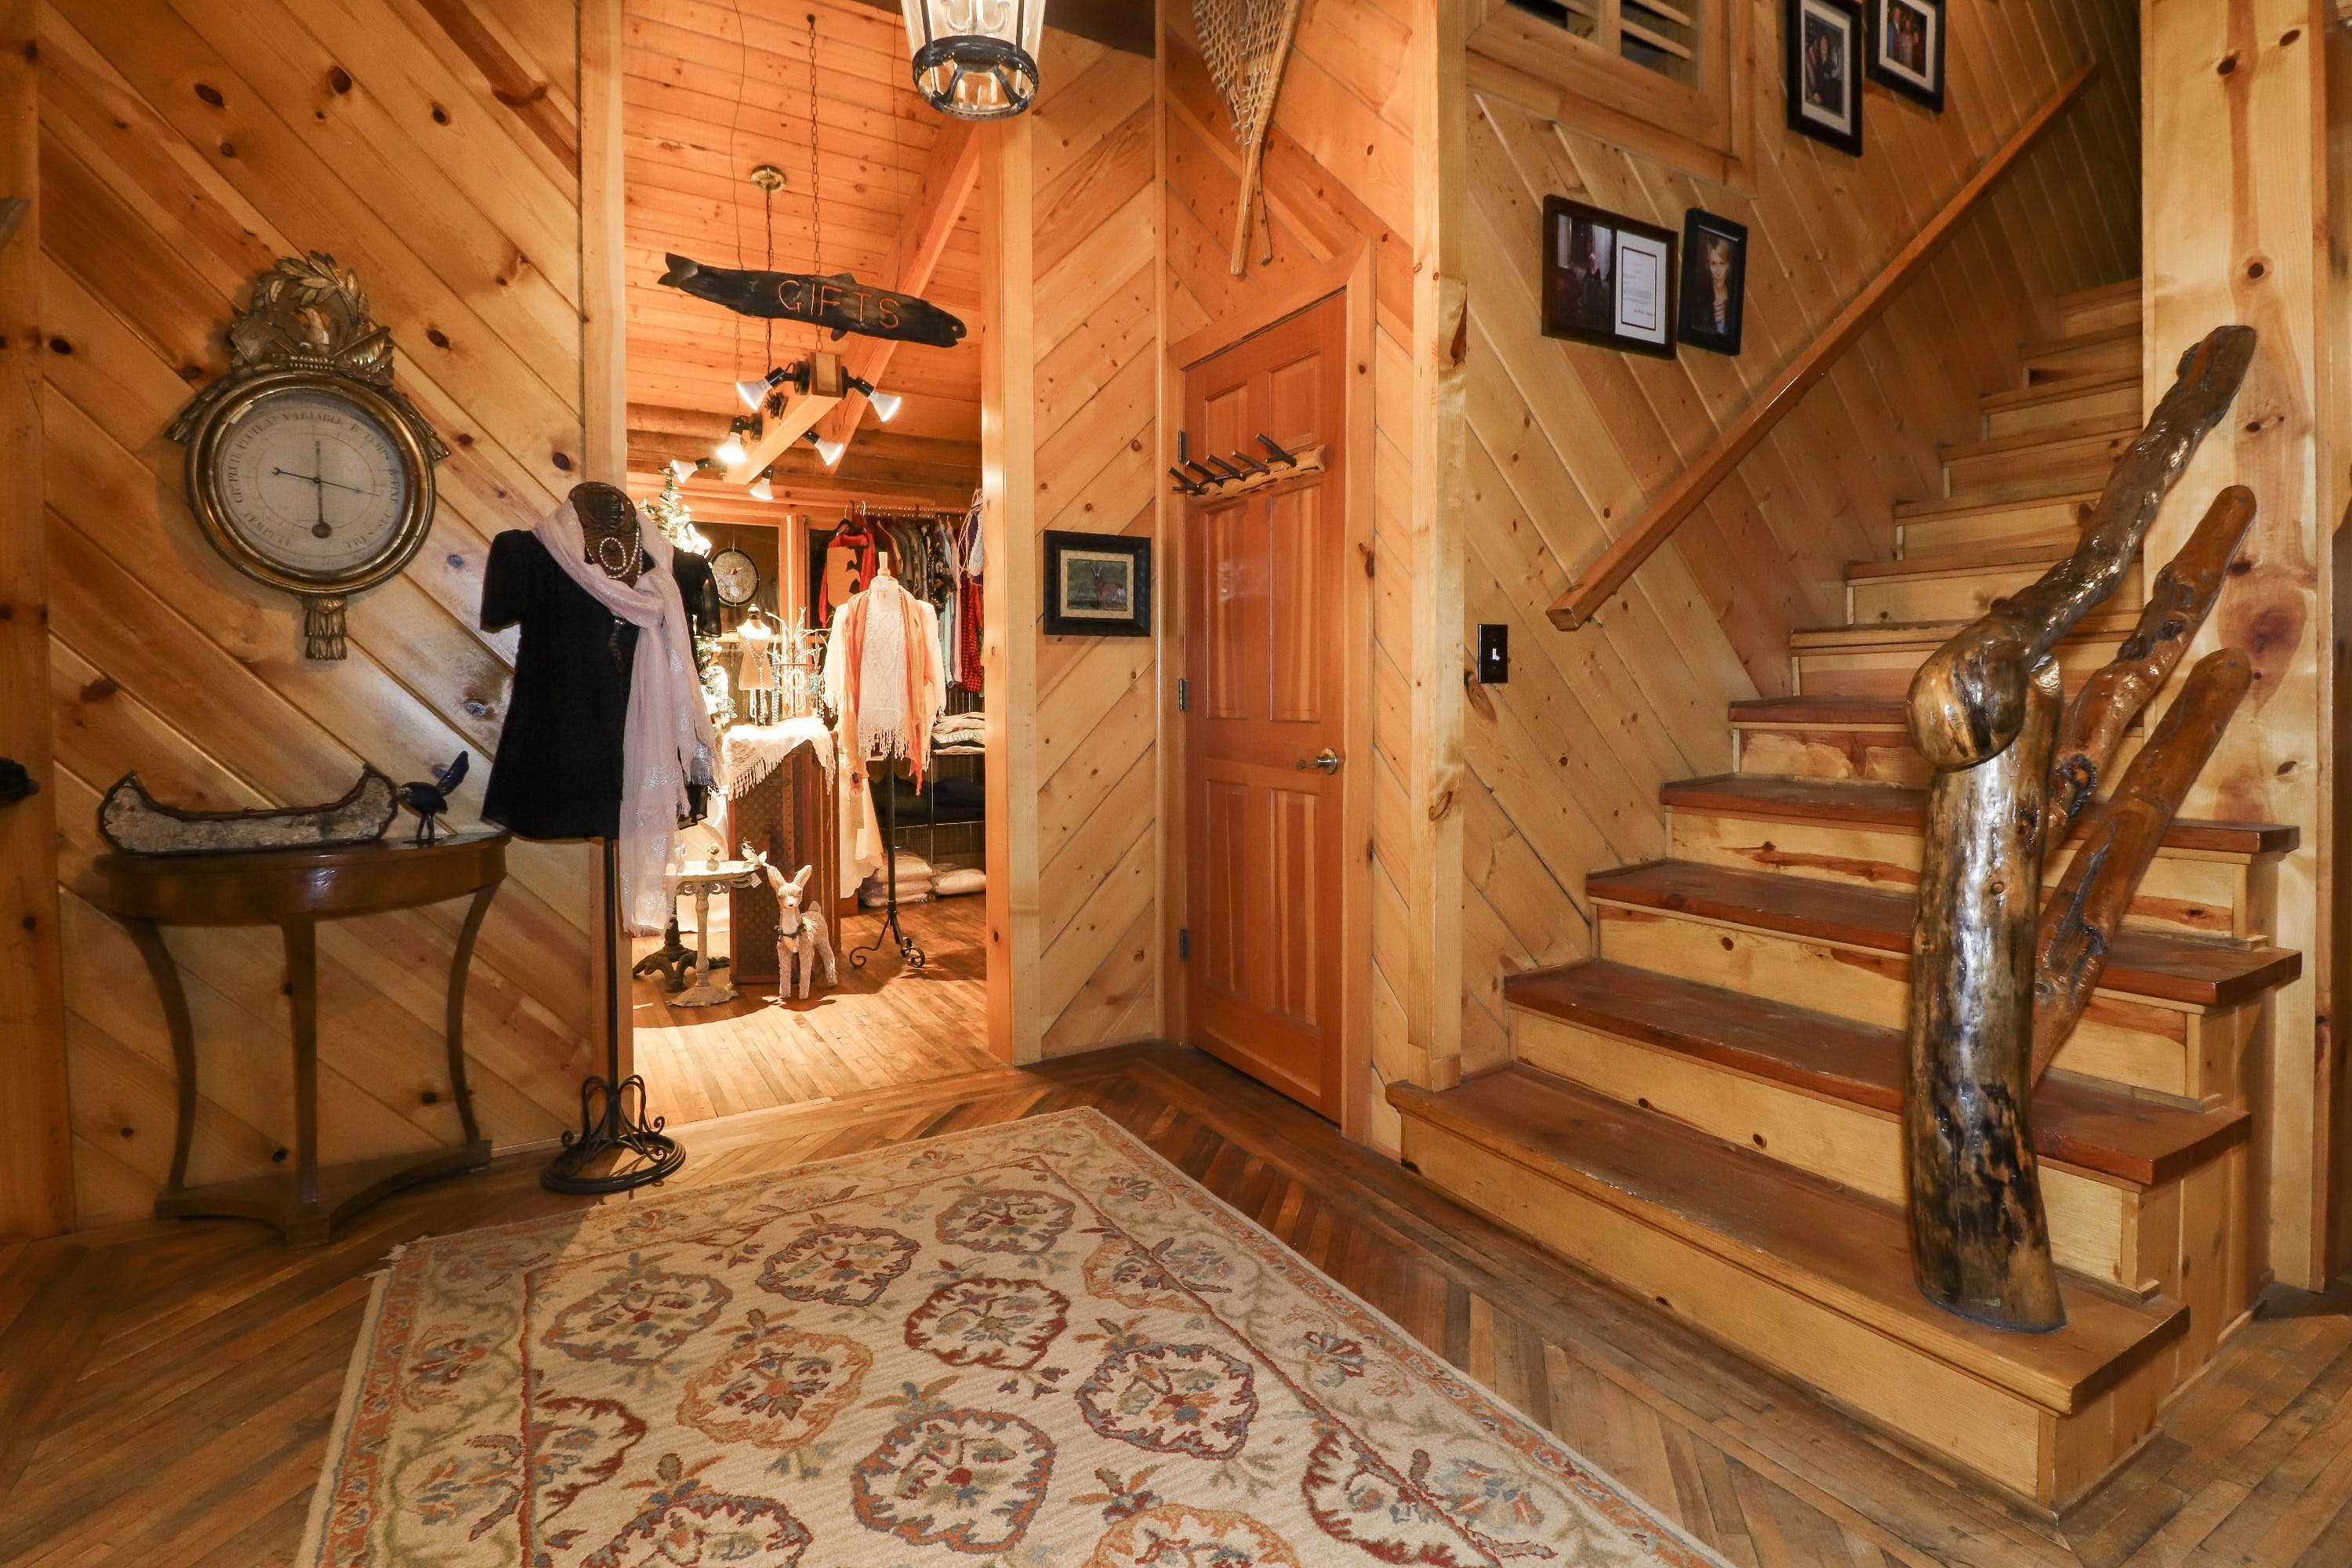 Log home B&B on quiet north shore of Big Bear Lake with gift shop